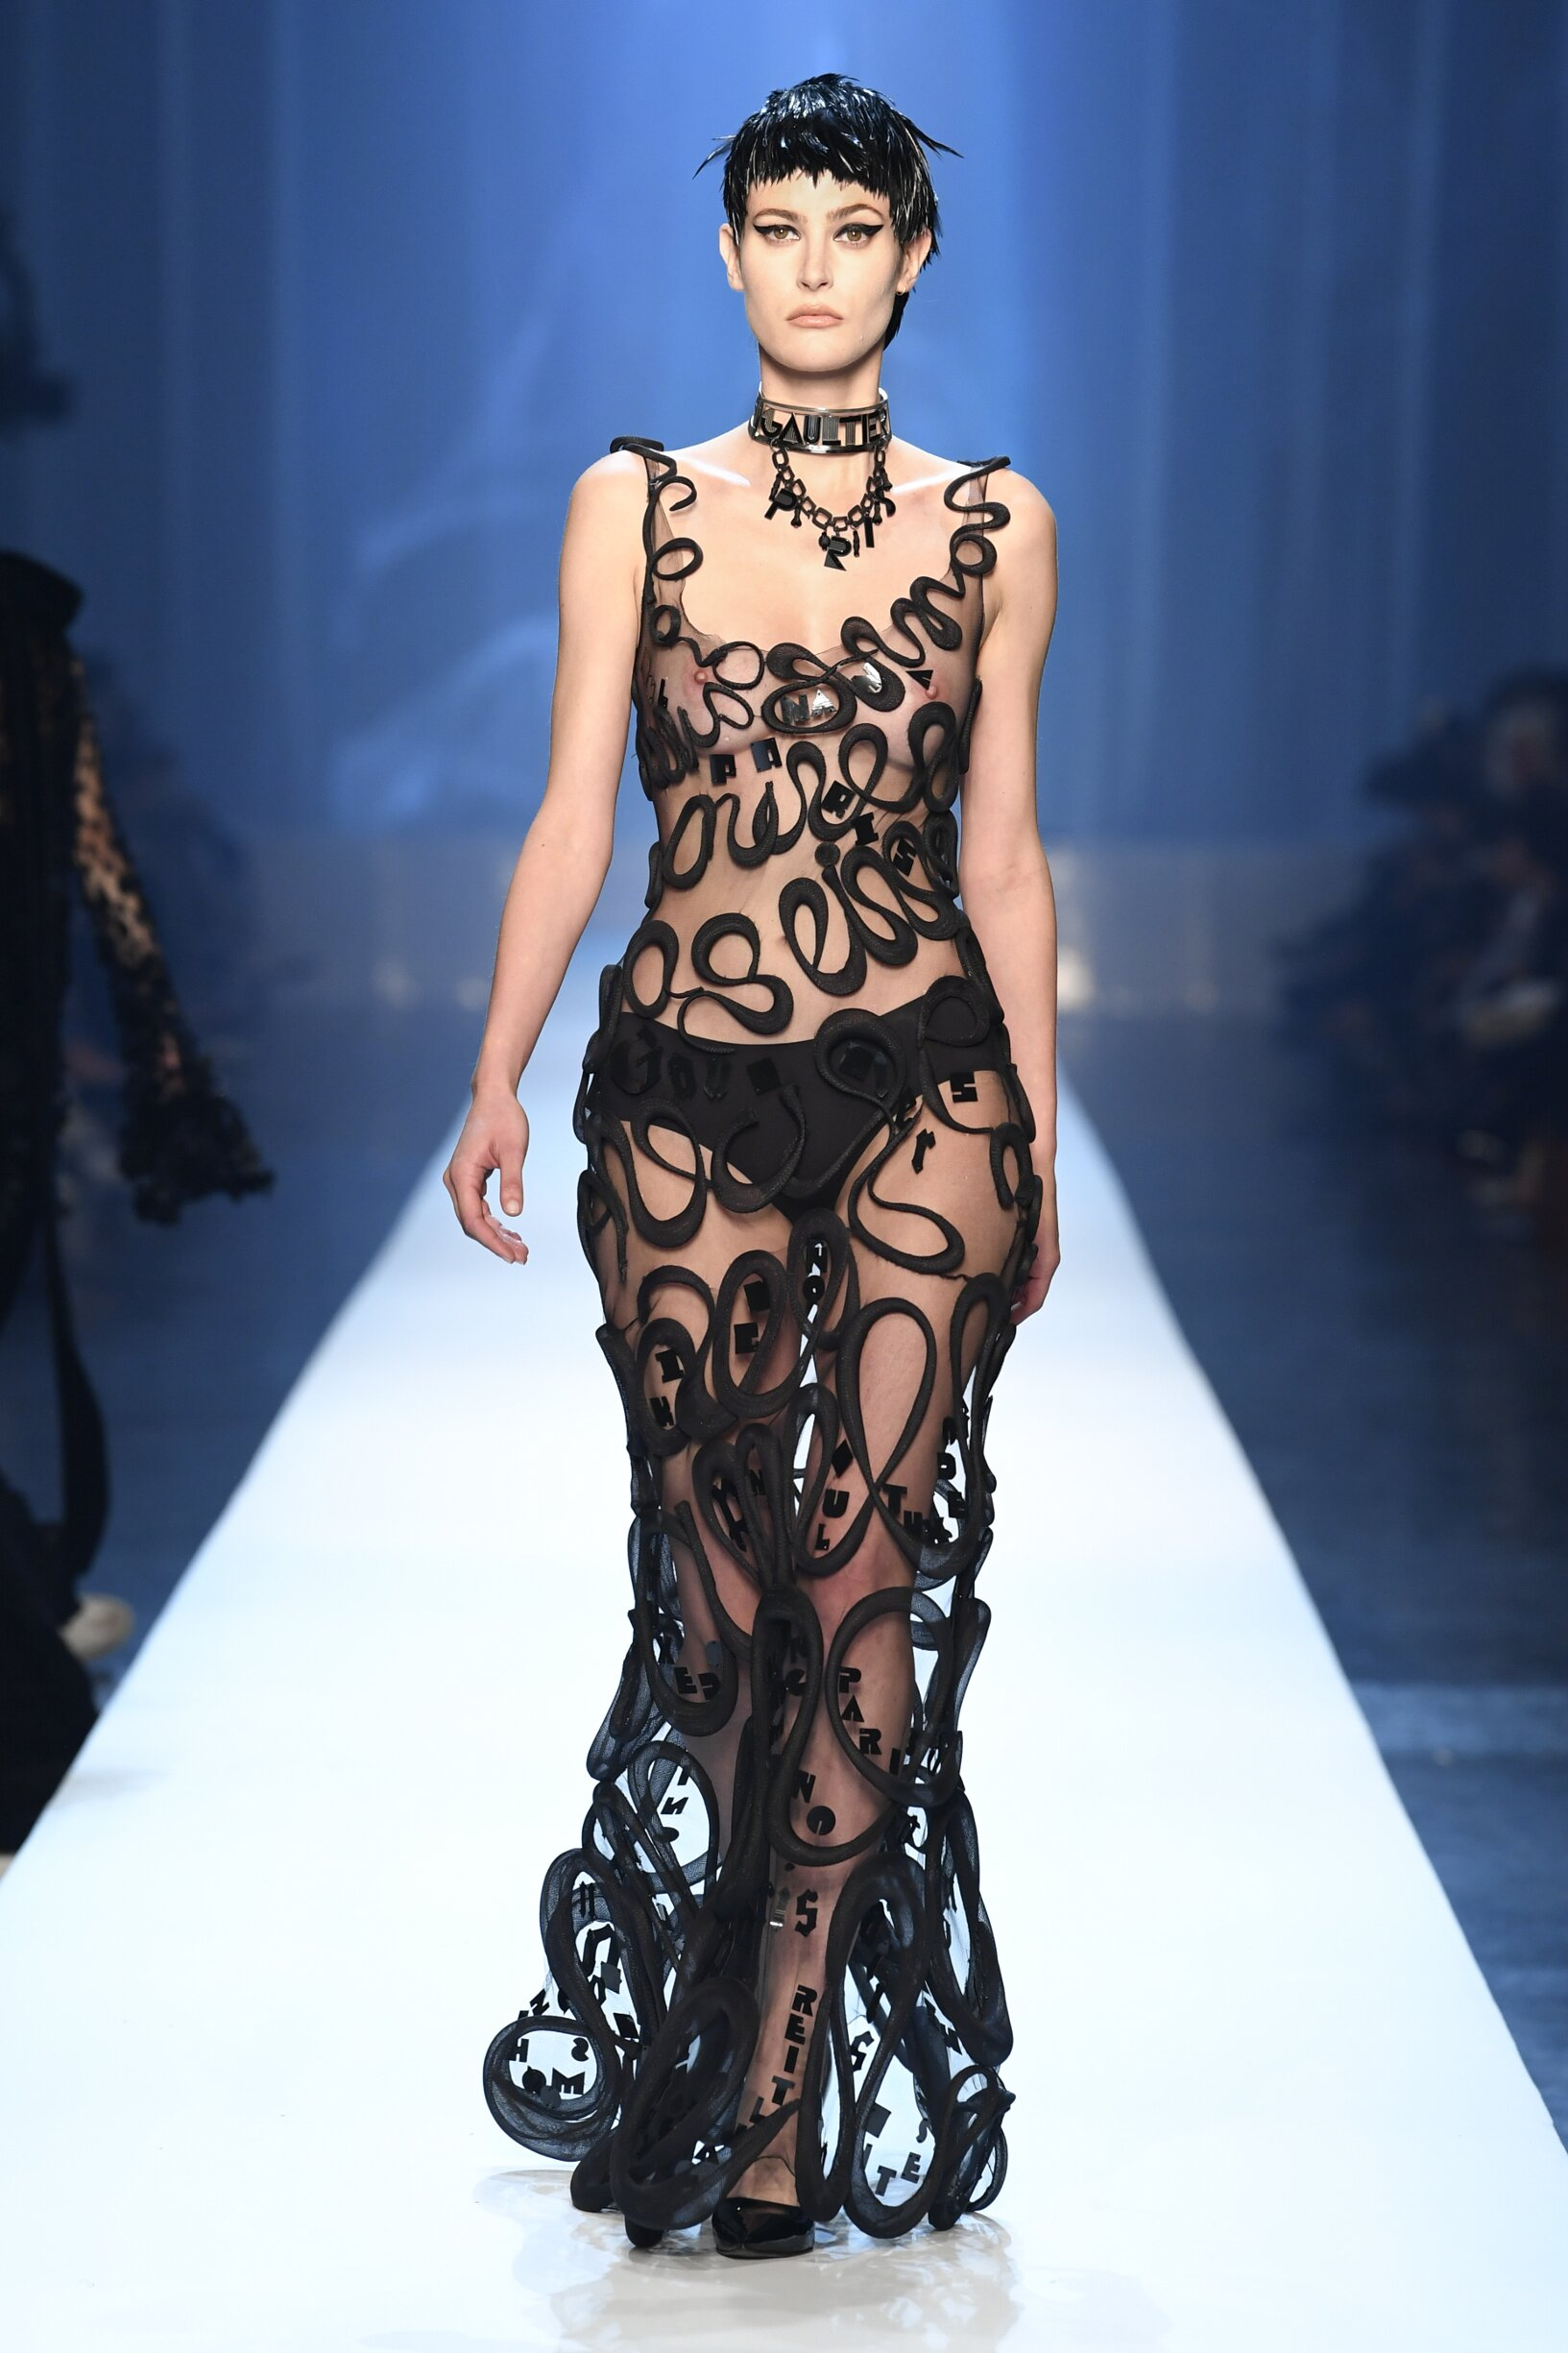 2018 Jean-Paul Gaultier Haute Couture Fall Catwalk